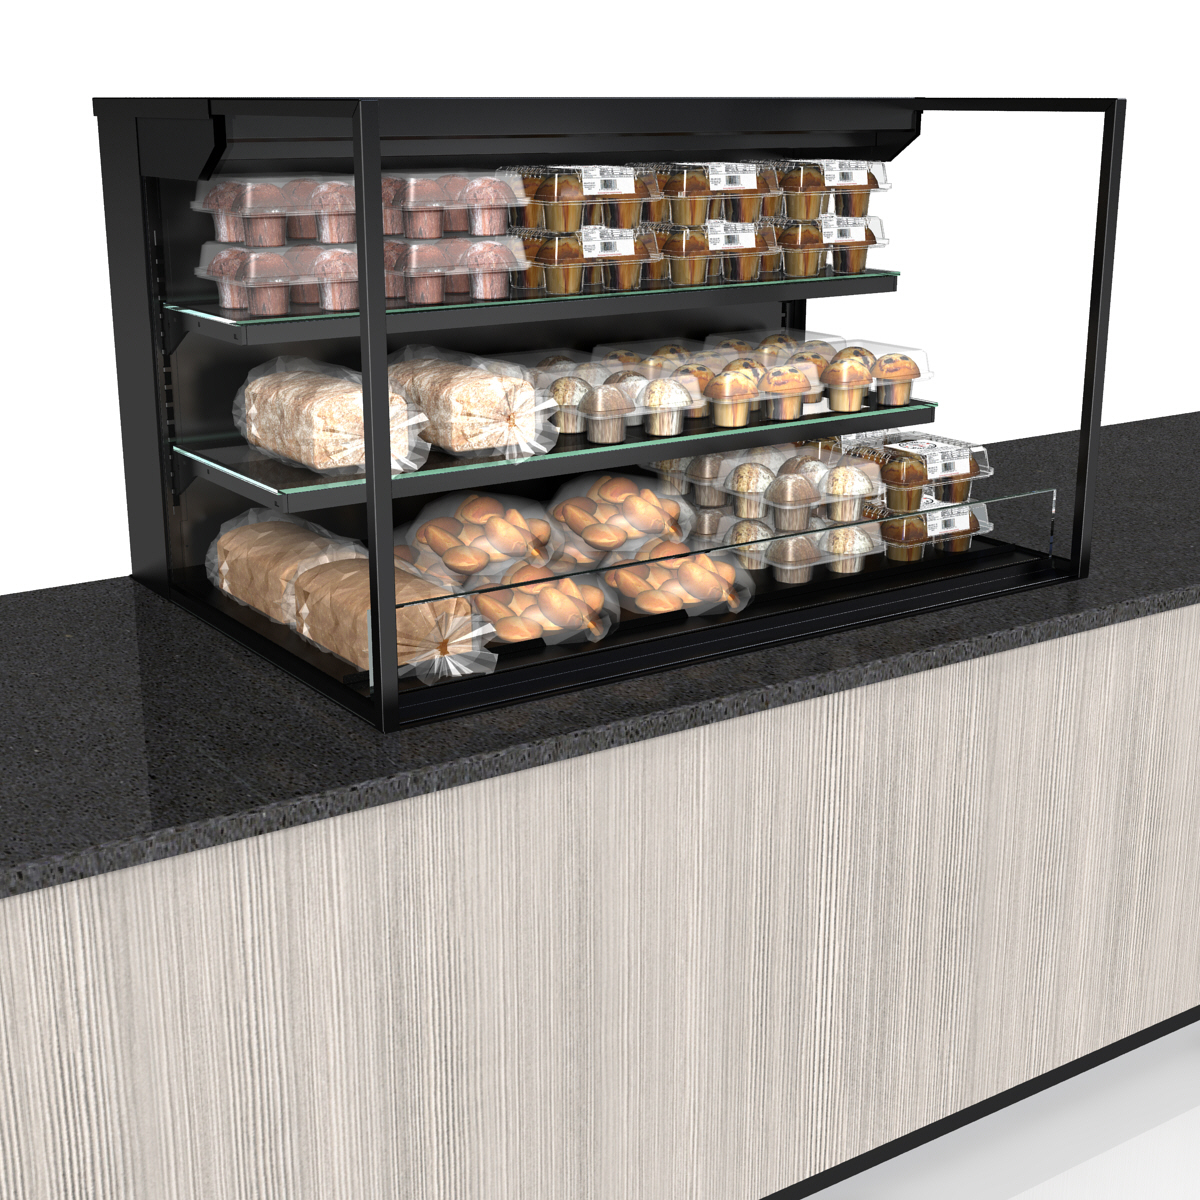 Structural Concepts NE4827DSSV display case, non-refrigerated, slide in counter